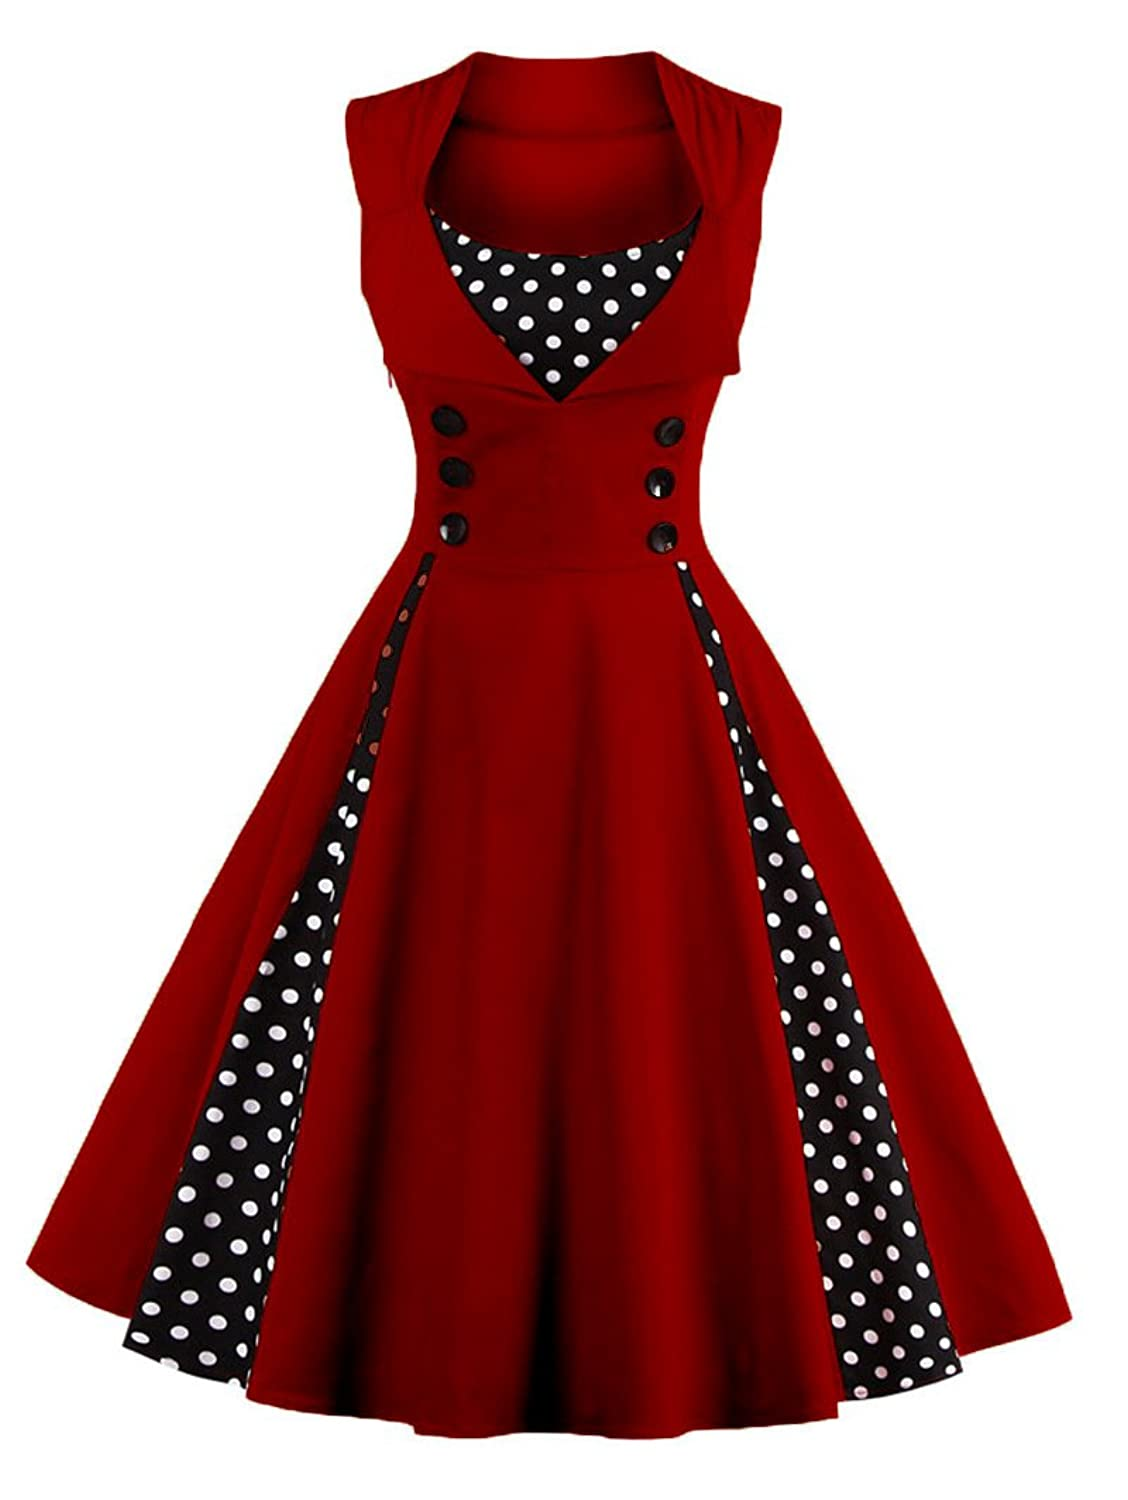 Vintage 50s Dresses: Best 1950s Dress Styles LUNAJANY Womens Rockabilly Vintage Polka Dot Pin up Swing Cocktail Party Dress $24.59 AT vintagedancer.com